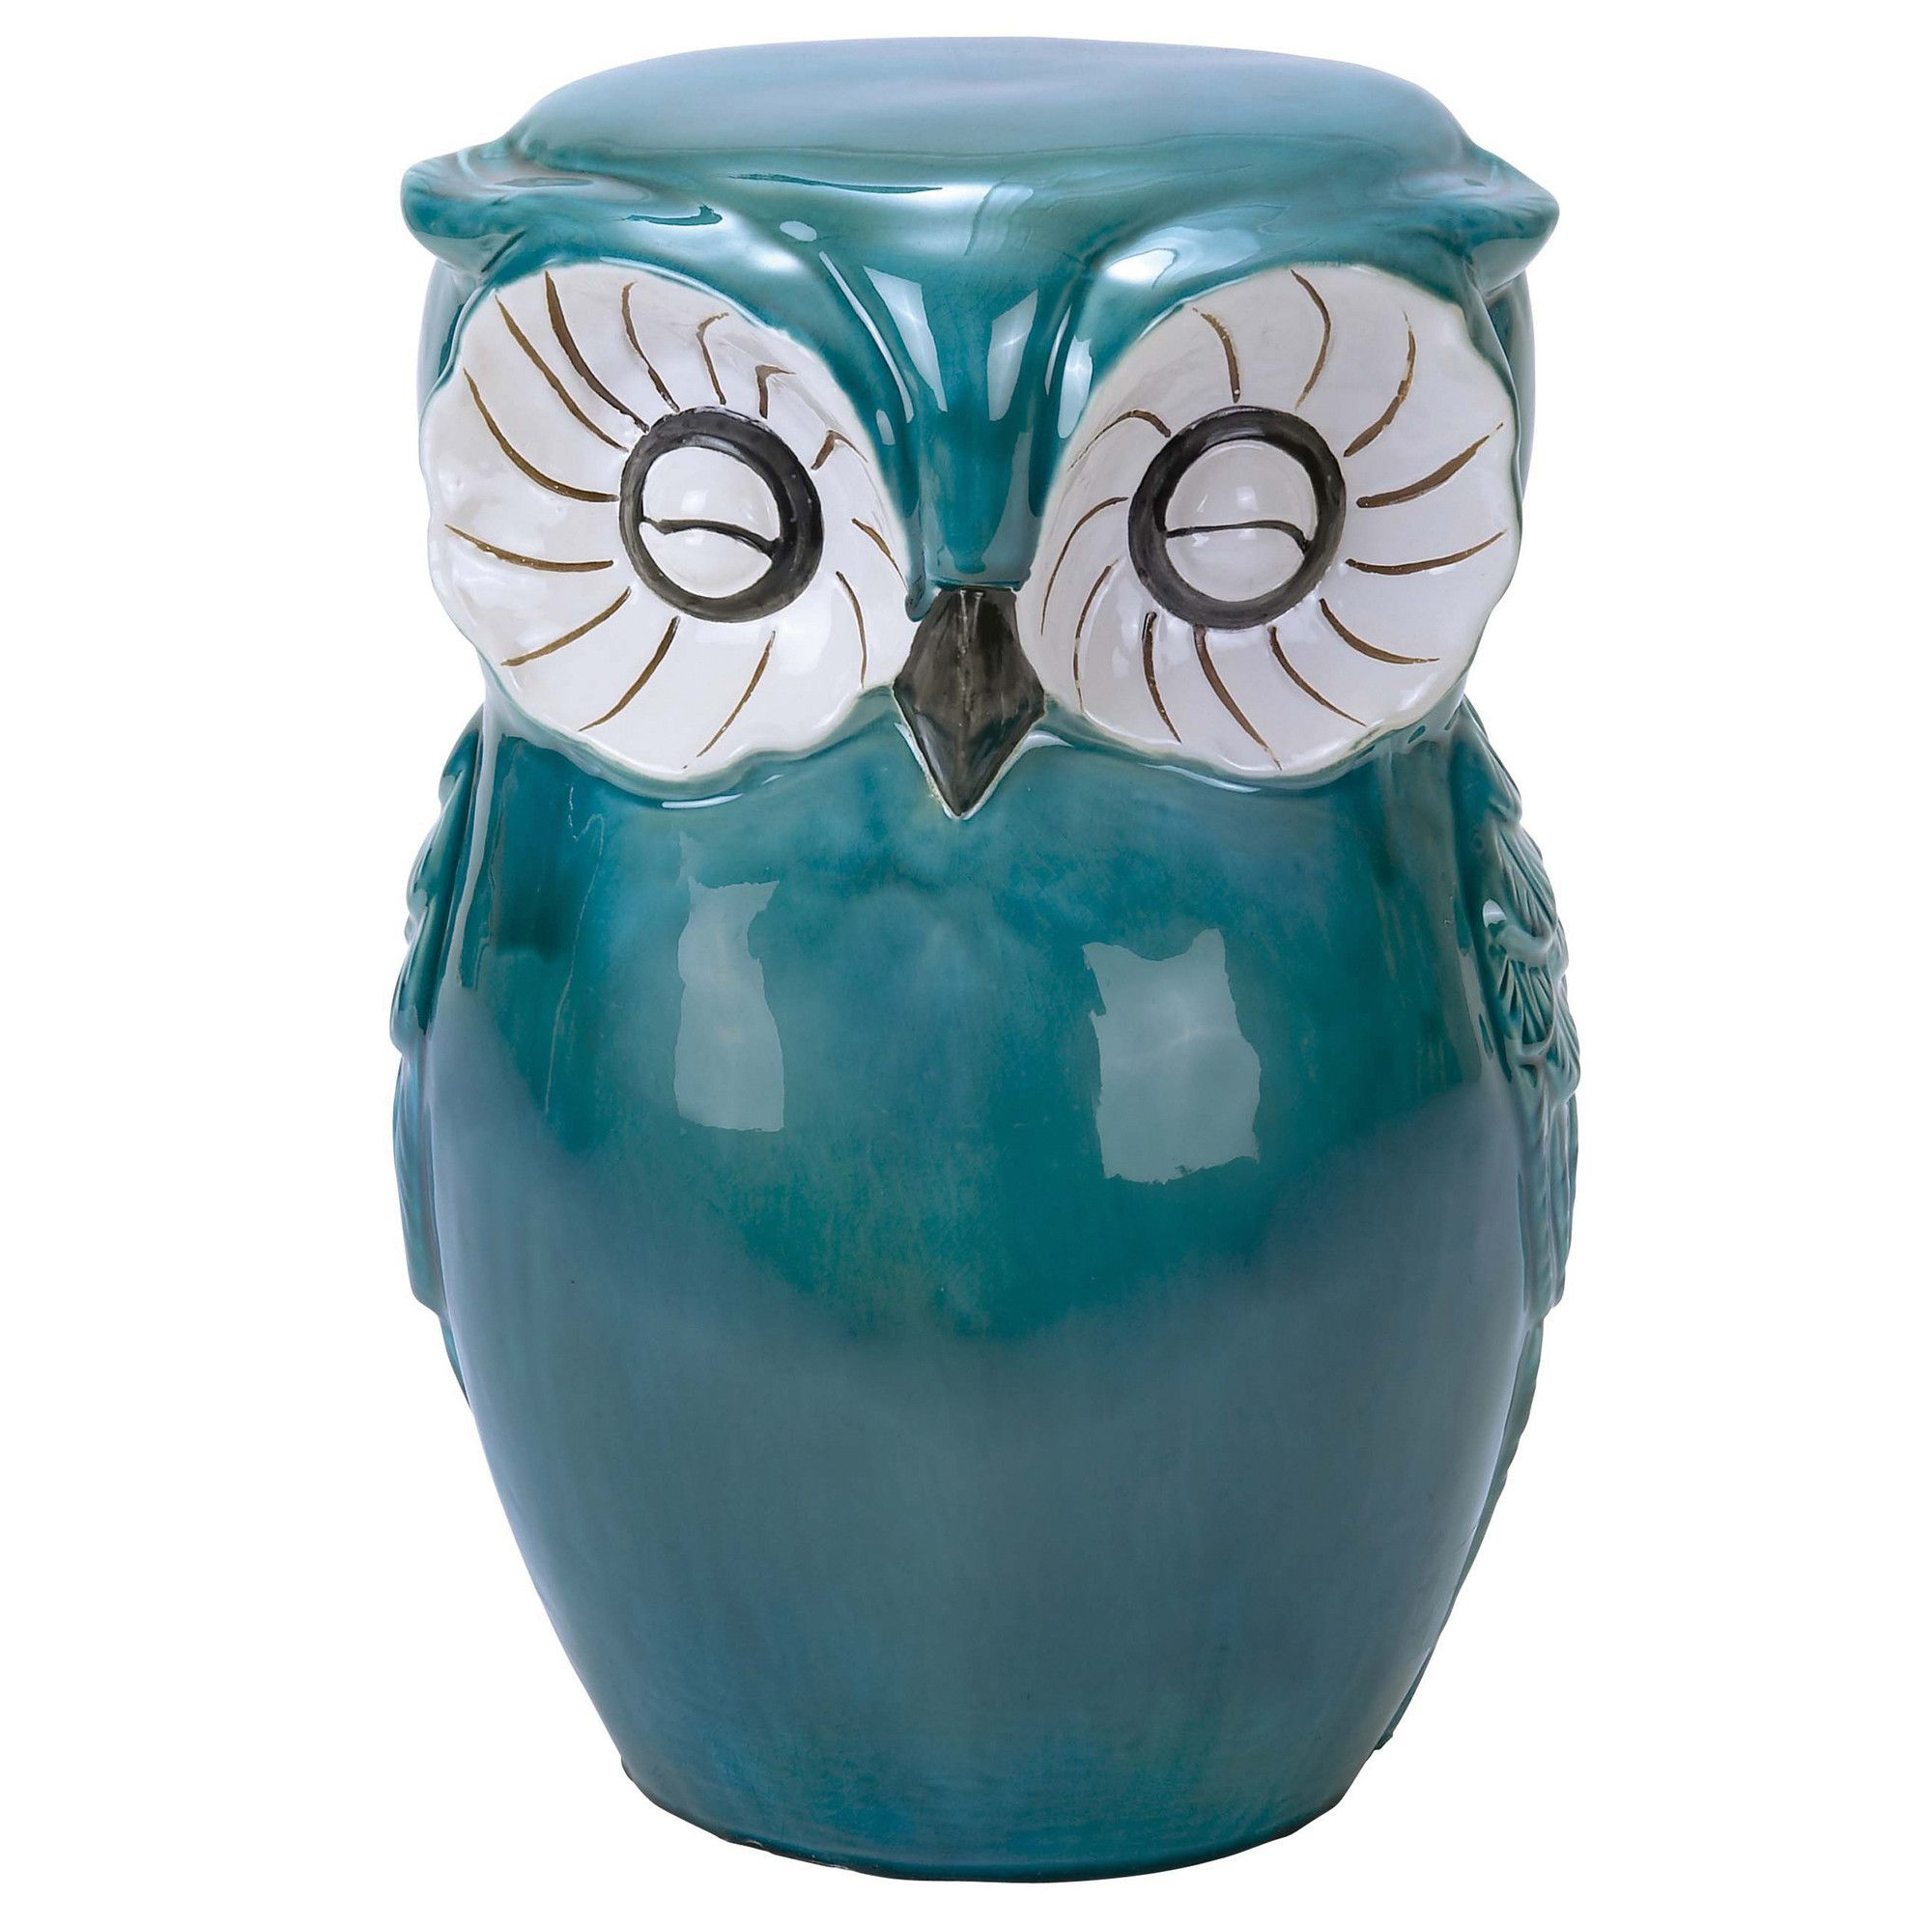 stool soon pin drinks mine for seating wise a owl or be to